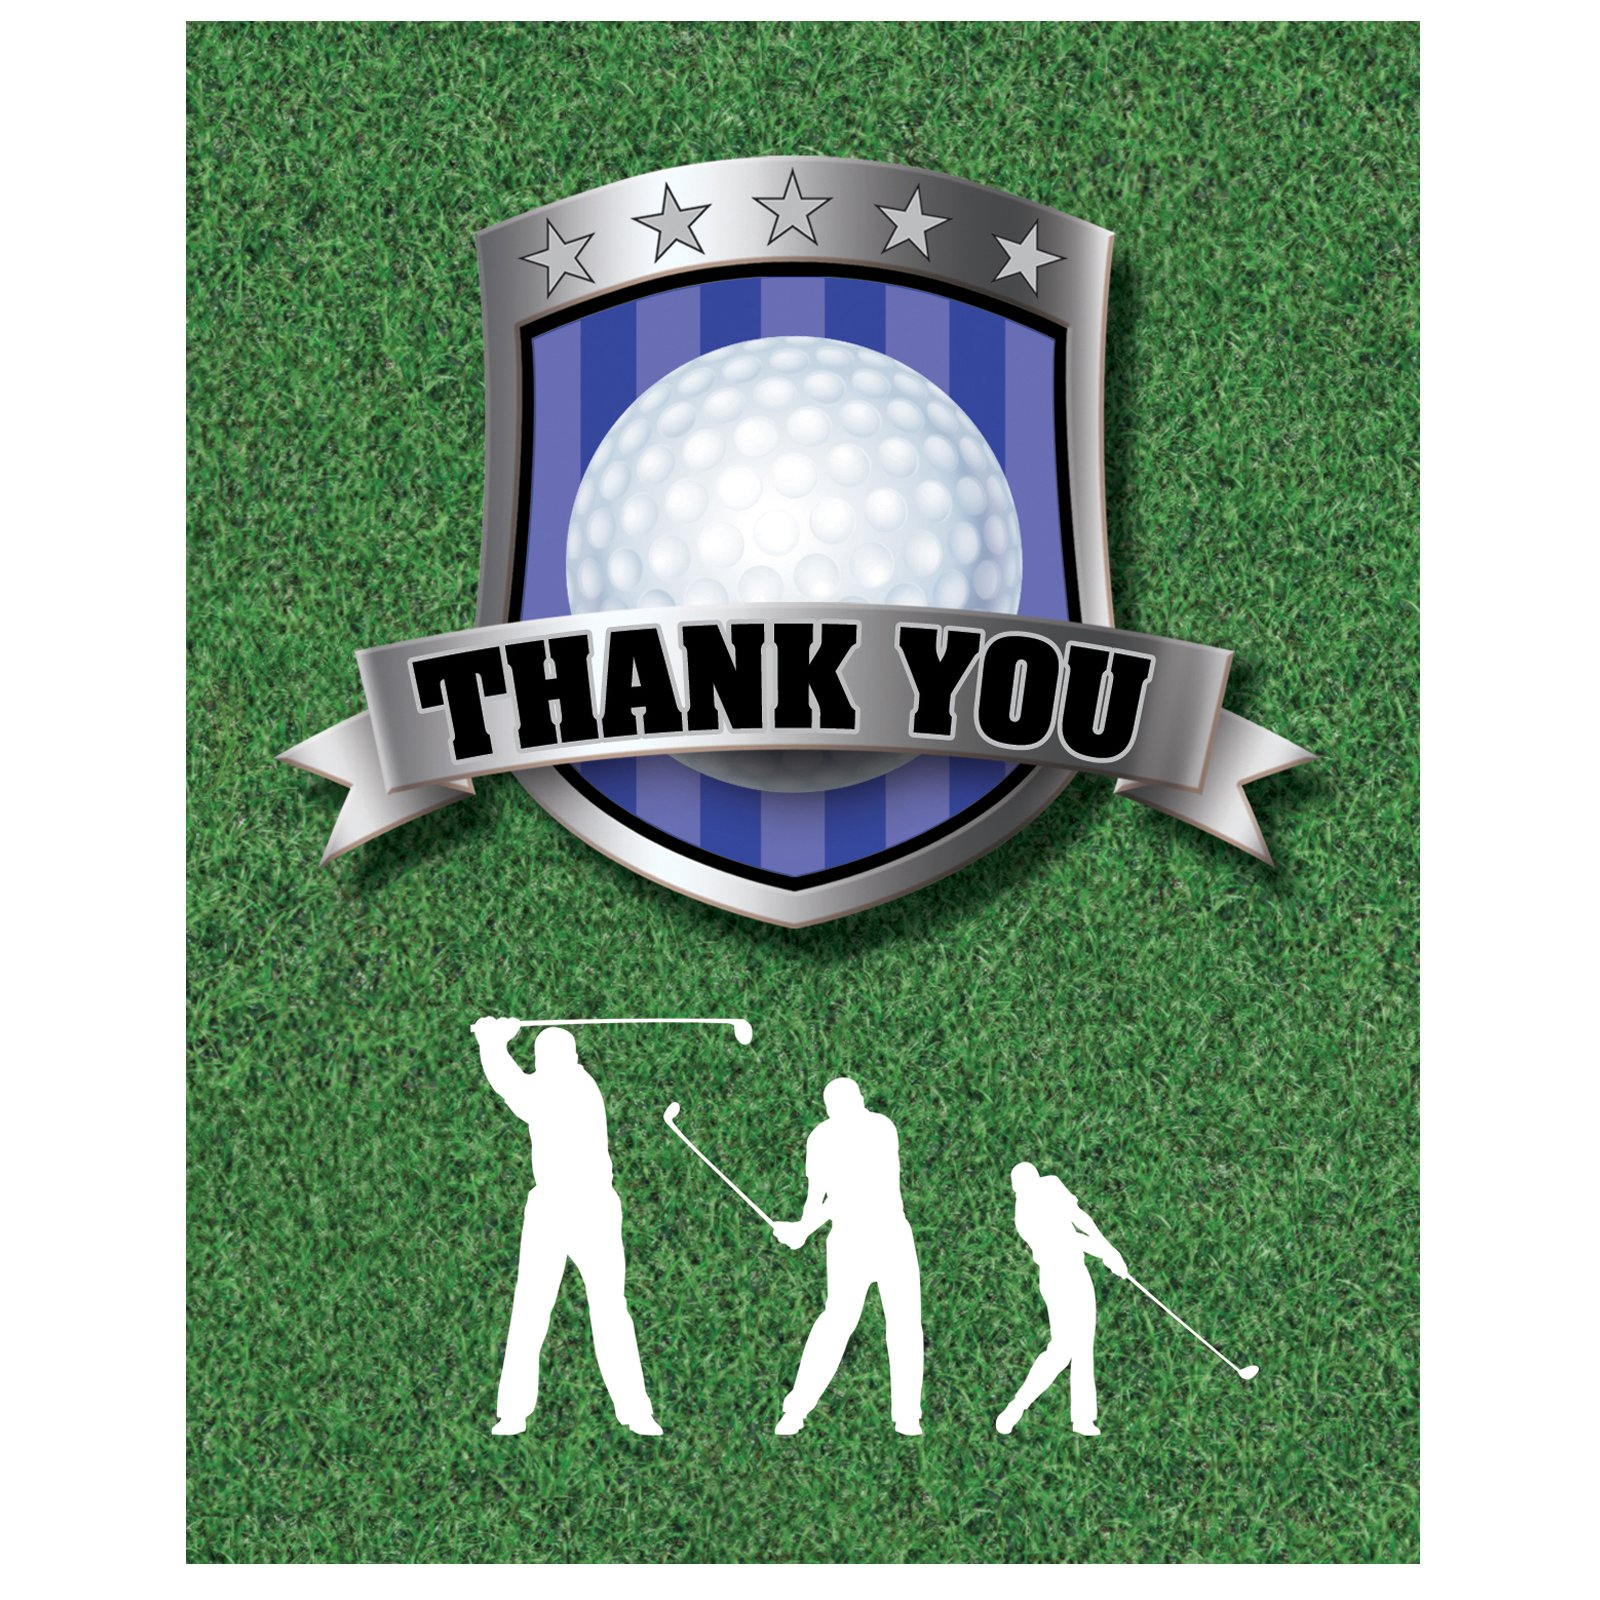 Golf - Thank You Cards (8 count)